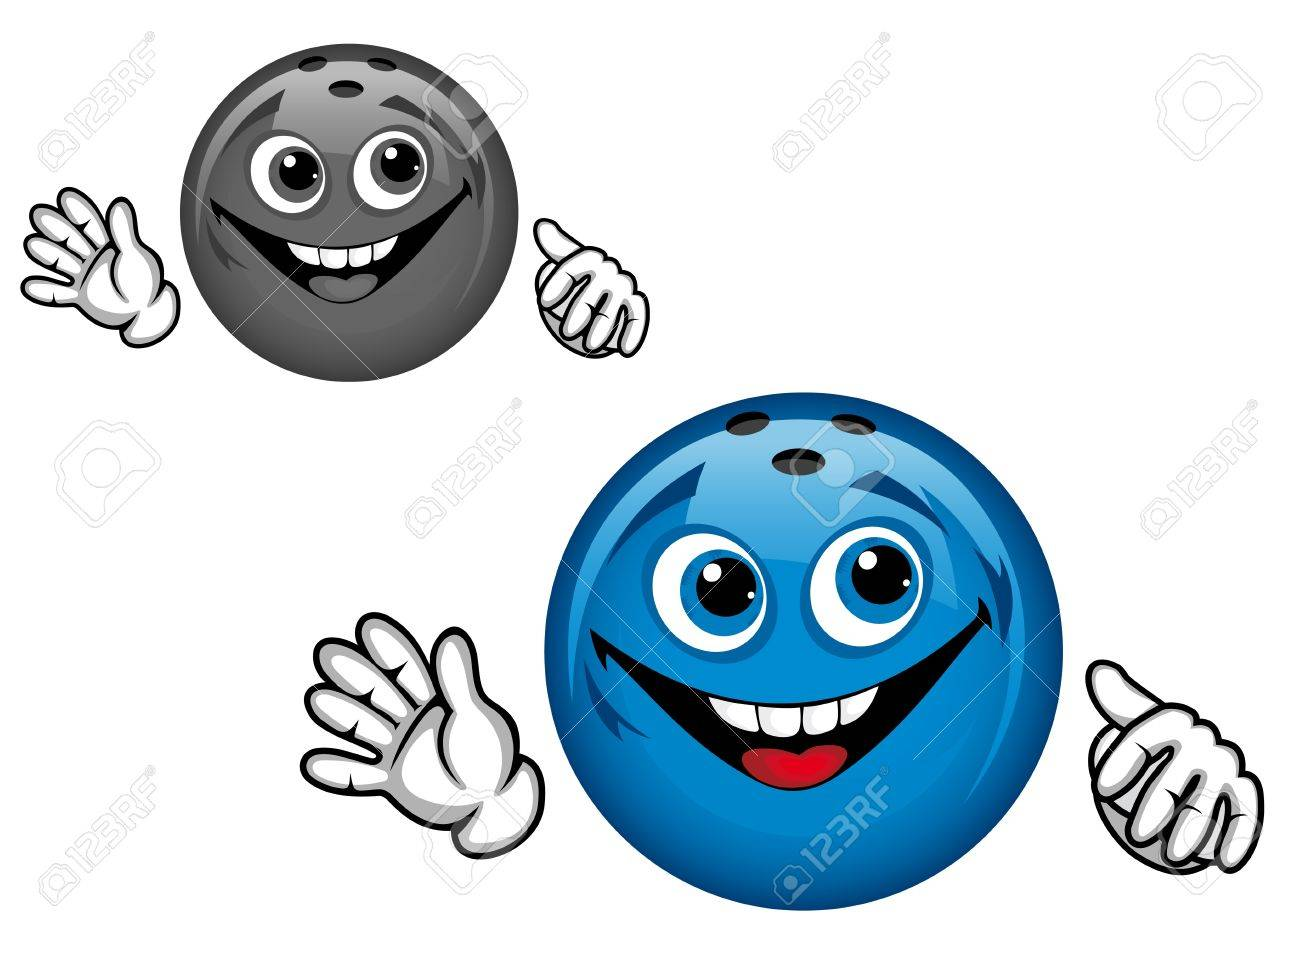 Bowling ball in cartoon style for sports design Stock Vector - 12465390